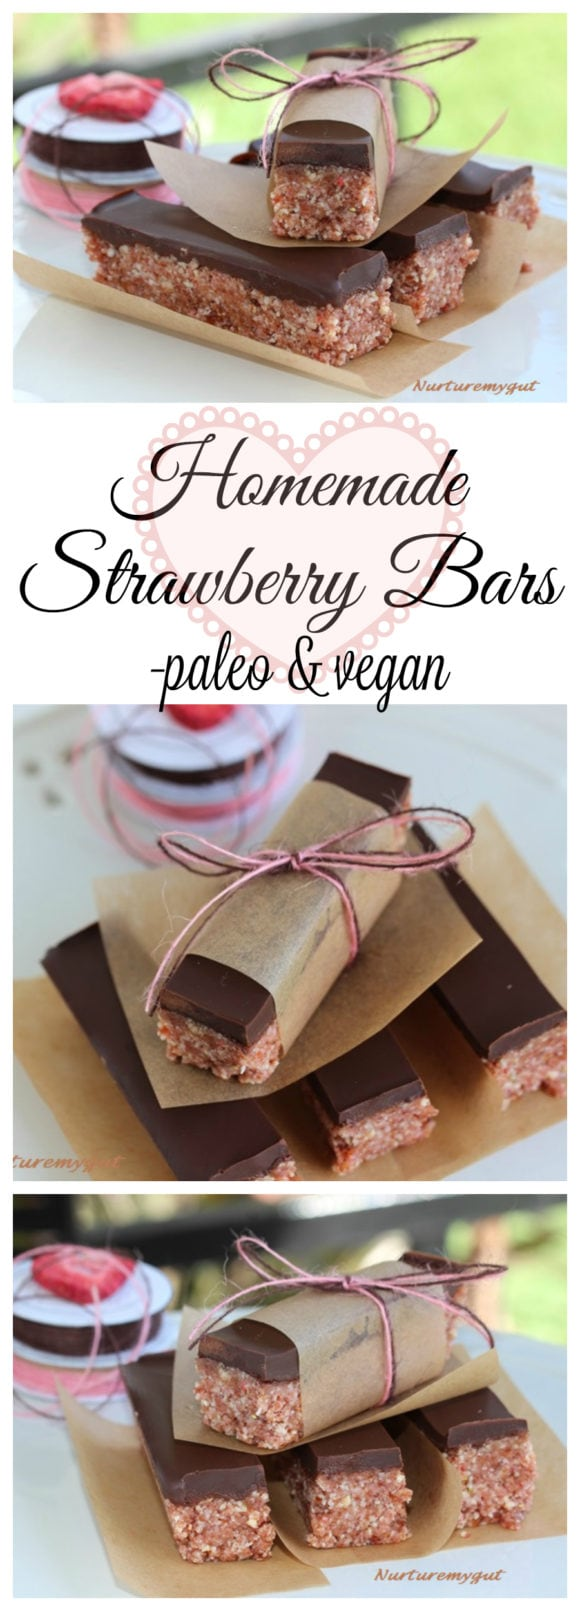 homemade strawberry bars